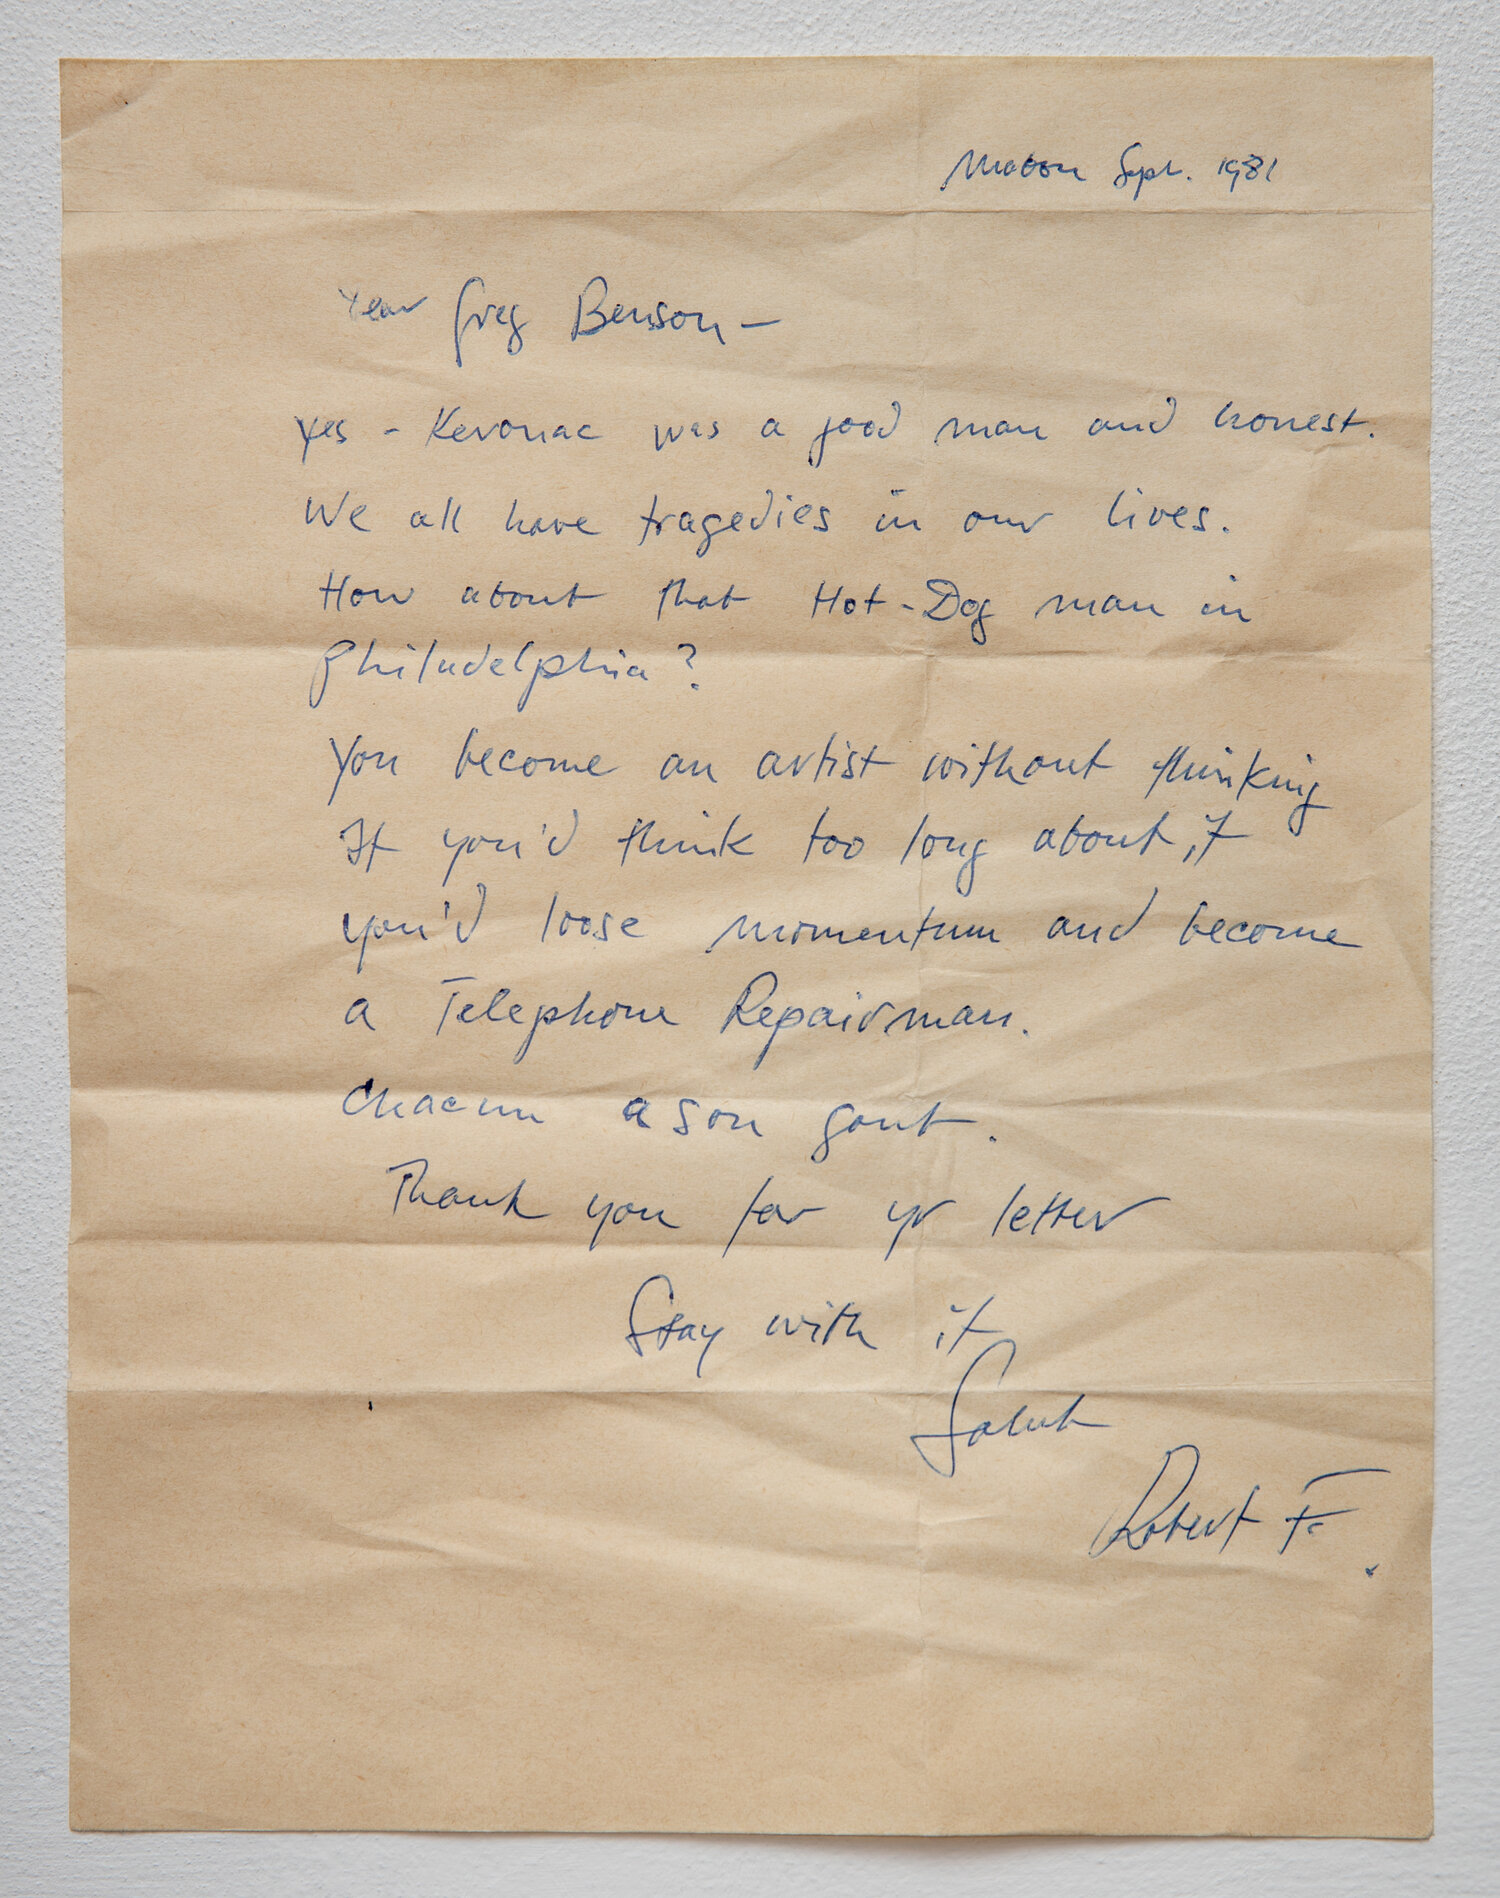 Robert Frank's letter to me.